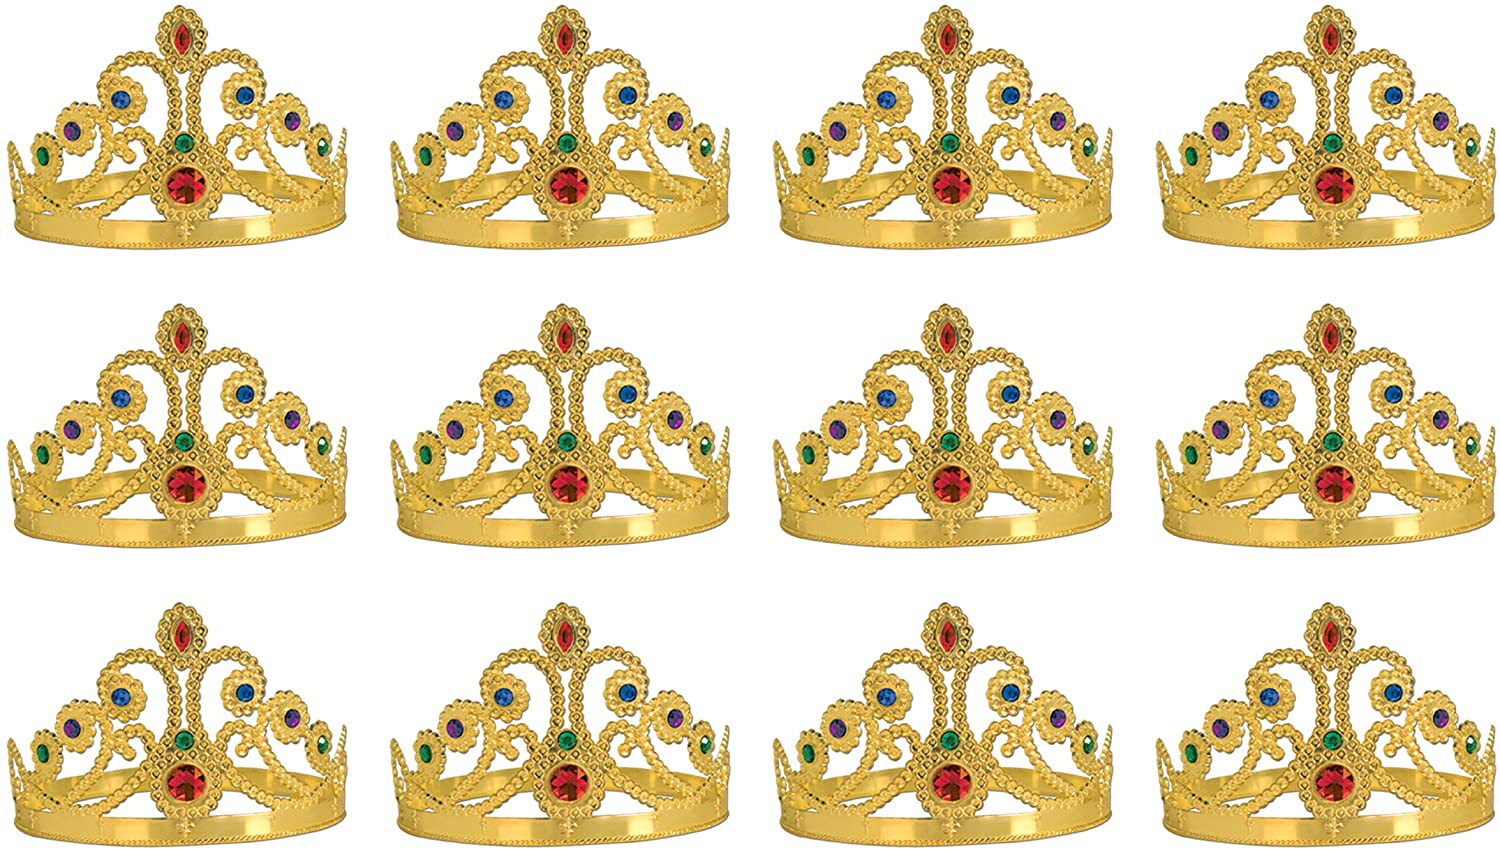 Beistle 12-Pack Plastic Jeweled Queen-Feets Tiara, Gold